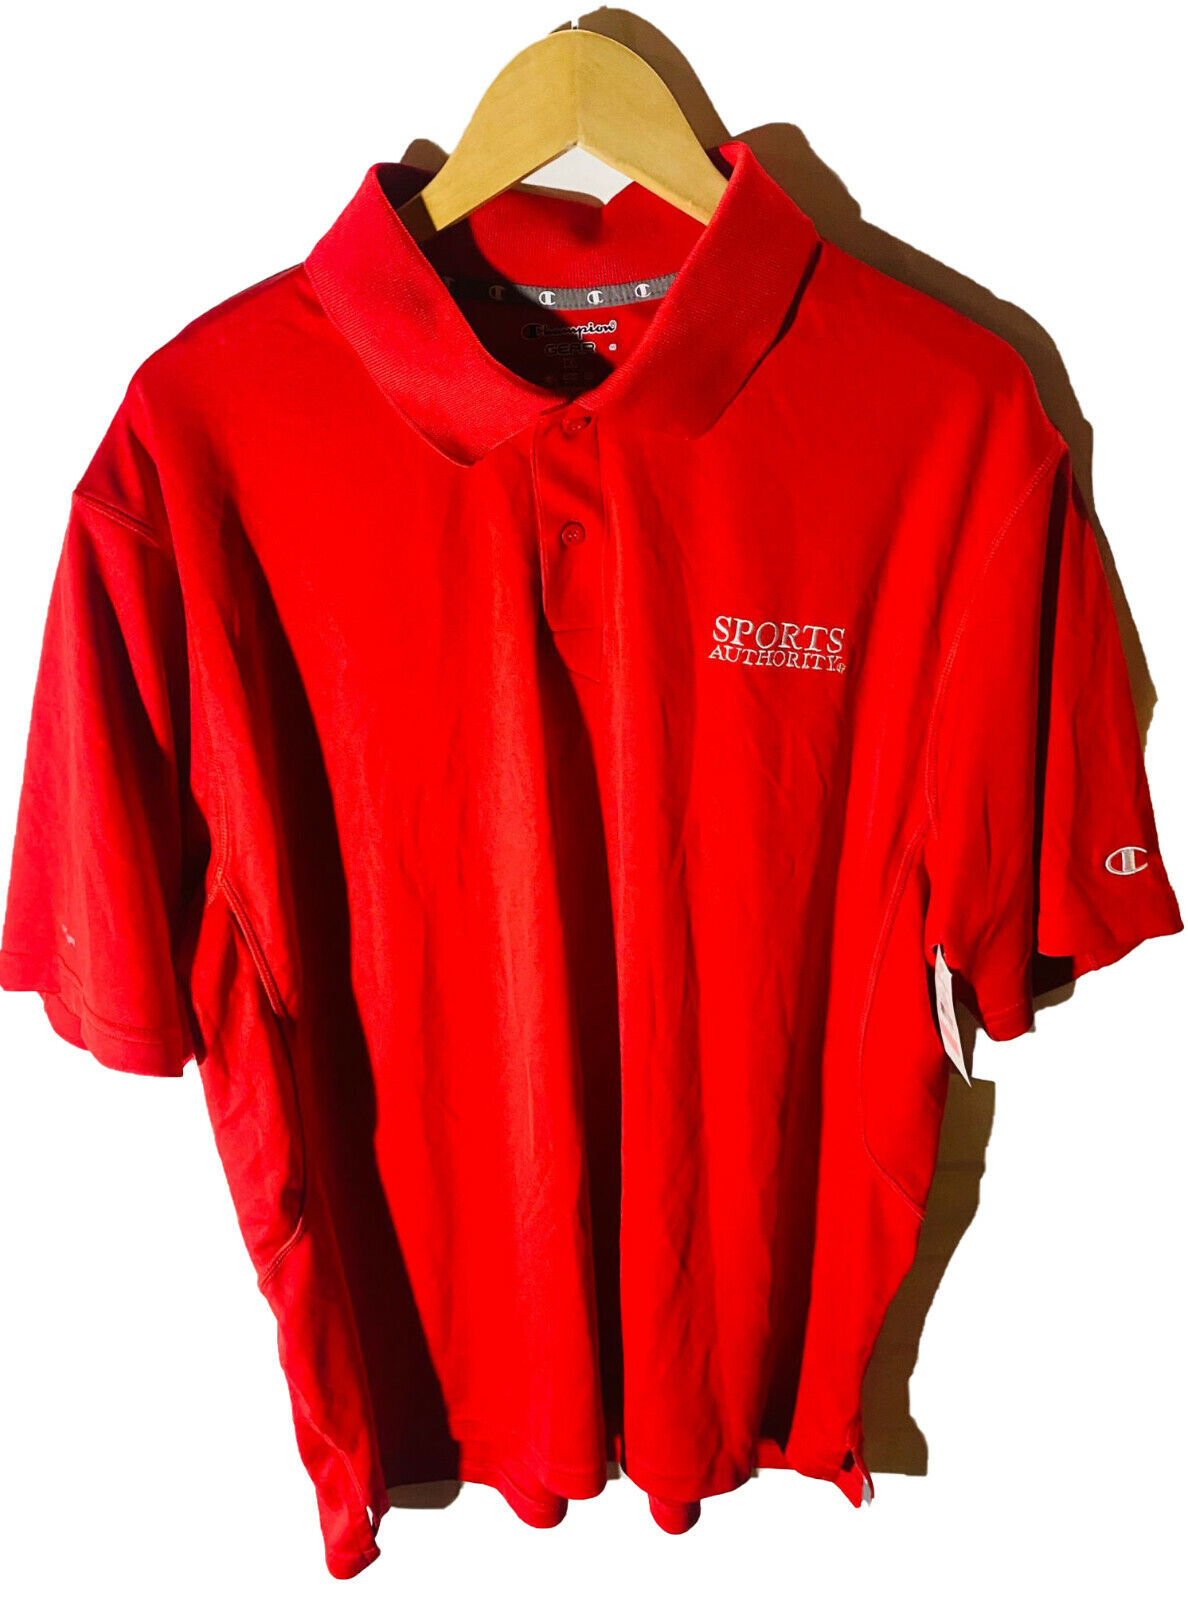 Champion Gear Sports Authority Men's Short Sleeve Polo Shirt Red XL